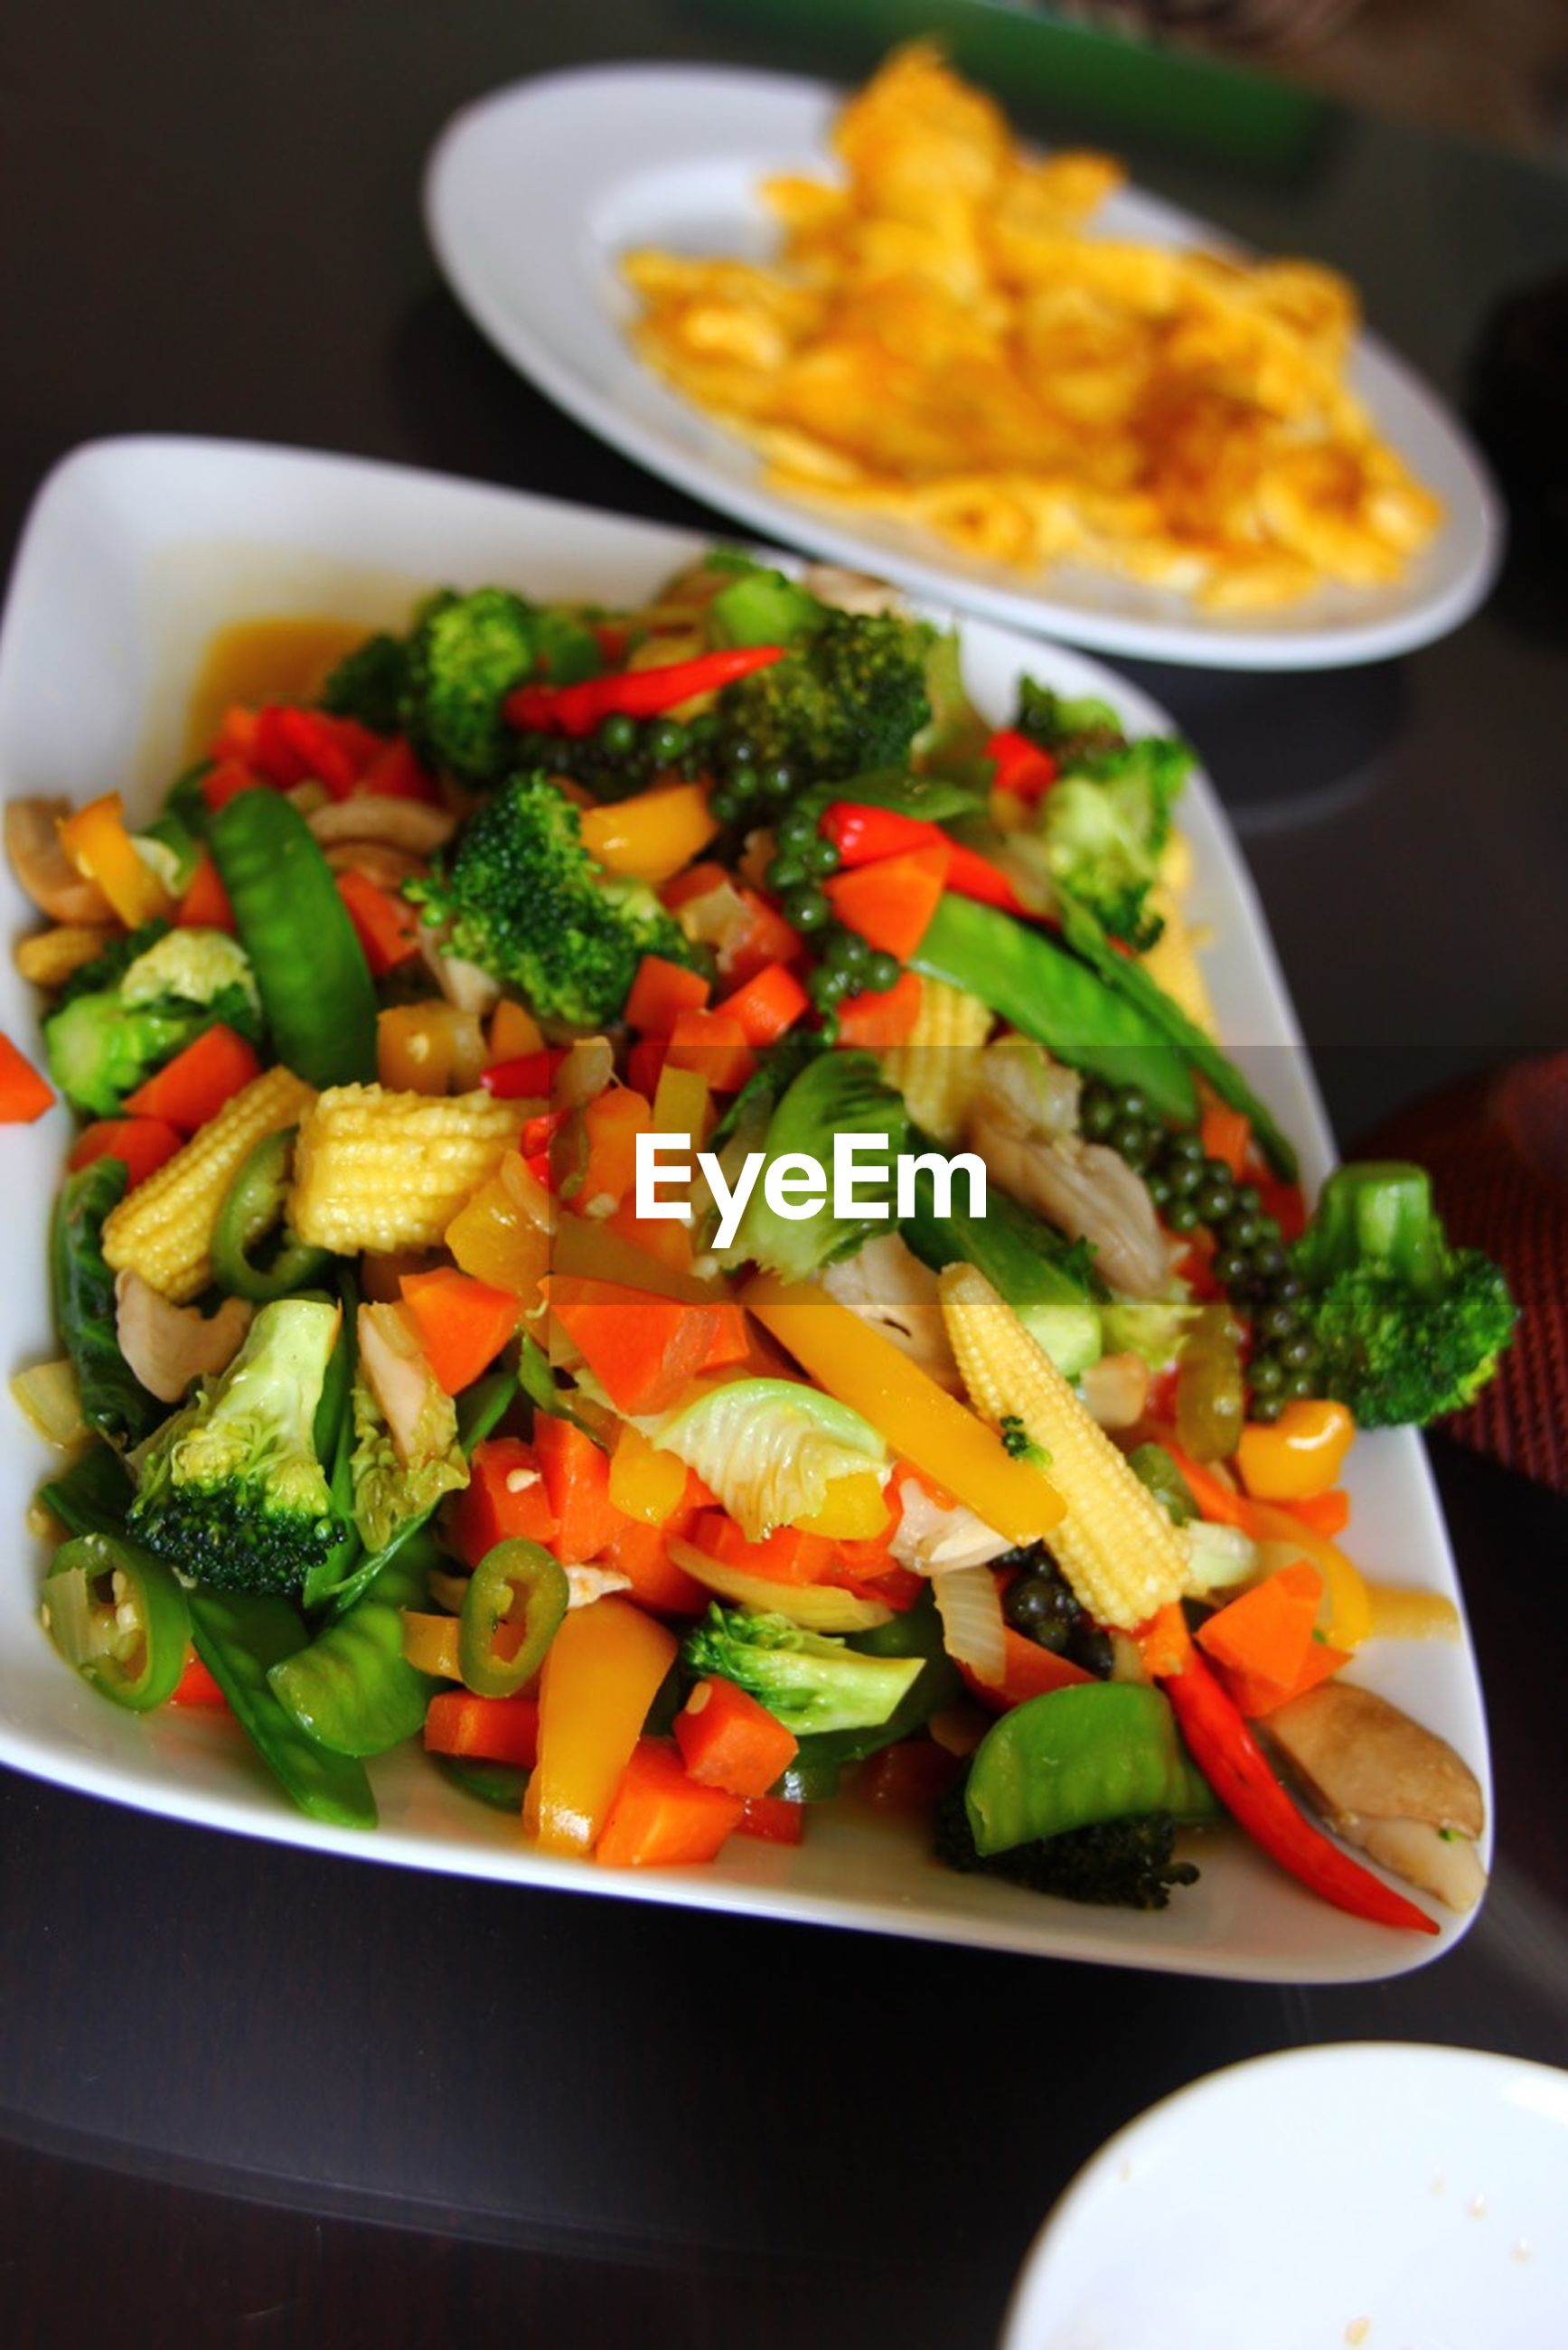 food and drink, food, indoors, freshness, healthy eating, vegetable, ready-to-eat, plate, still life, salad, close-up, meal, tomato, table, serving size, high angle view, bowl, no people, healthy lifestyle, indulgence